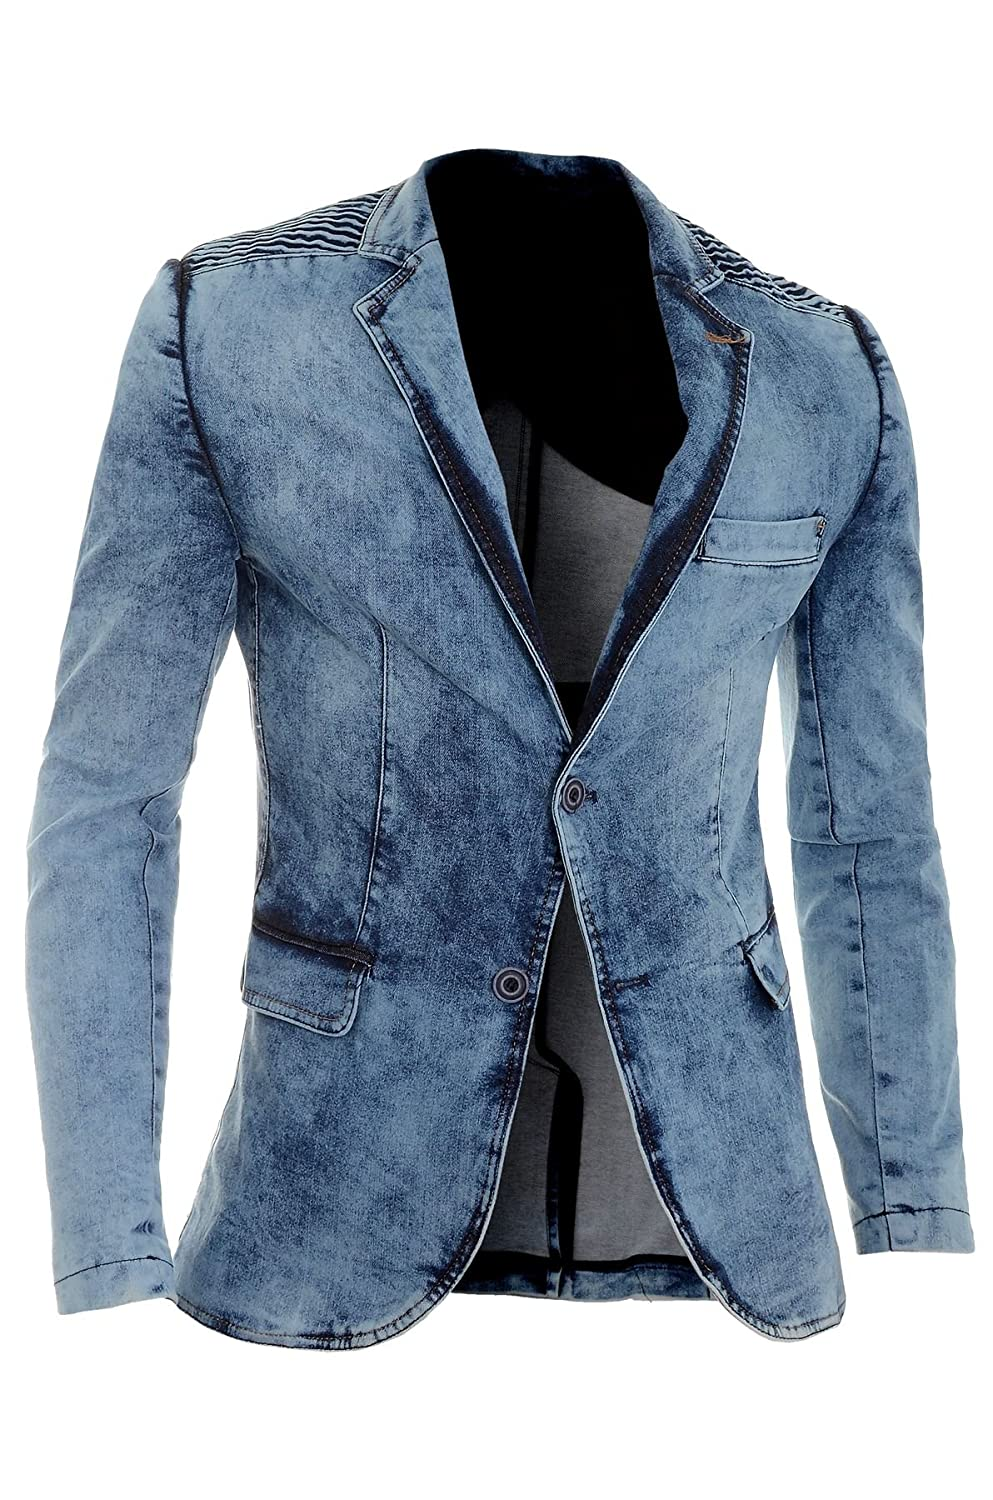 D&R Fashion Men's Denim Blazer Jacket Dark Blue Slim Fit Marble Print Cotton Ribbed Arms New